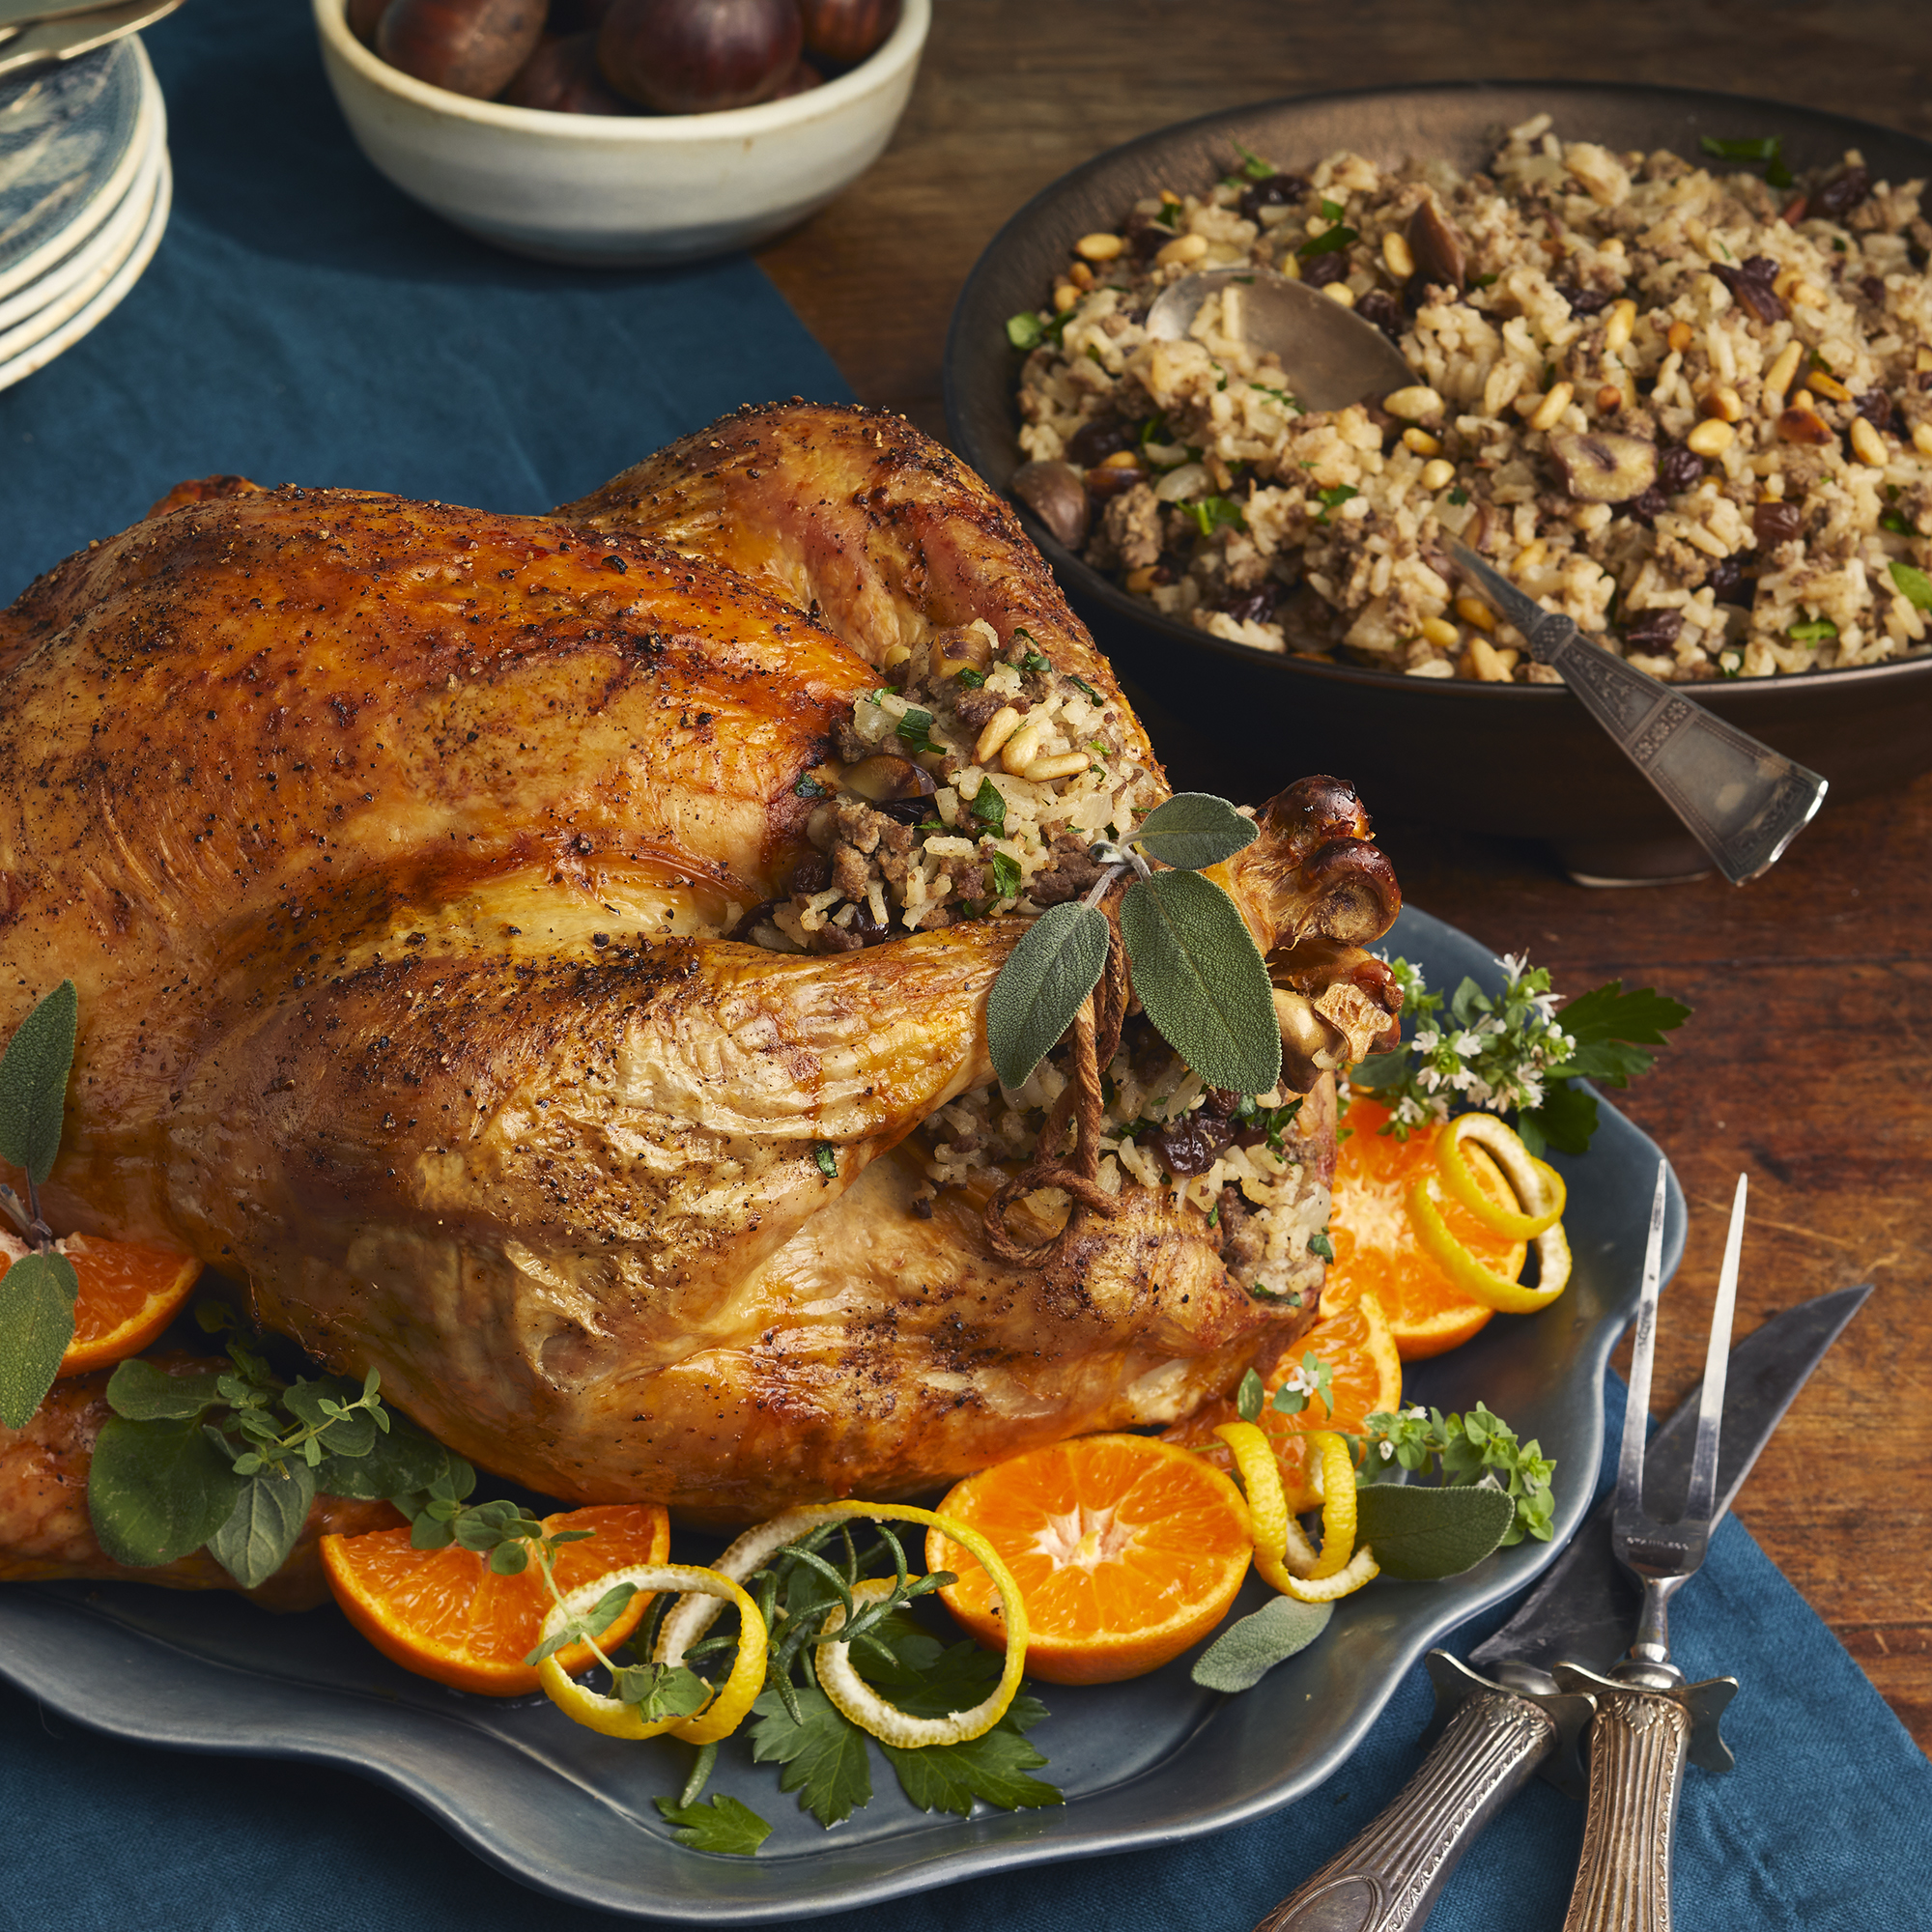 Greek Traditional Turkey with Chestnut and Pine Nut Stuffing Trusted Brands